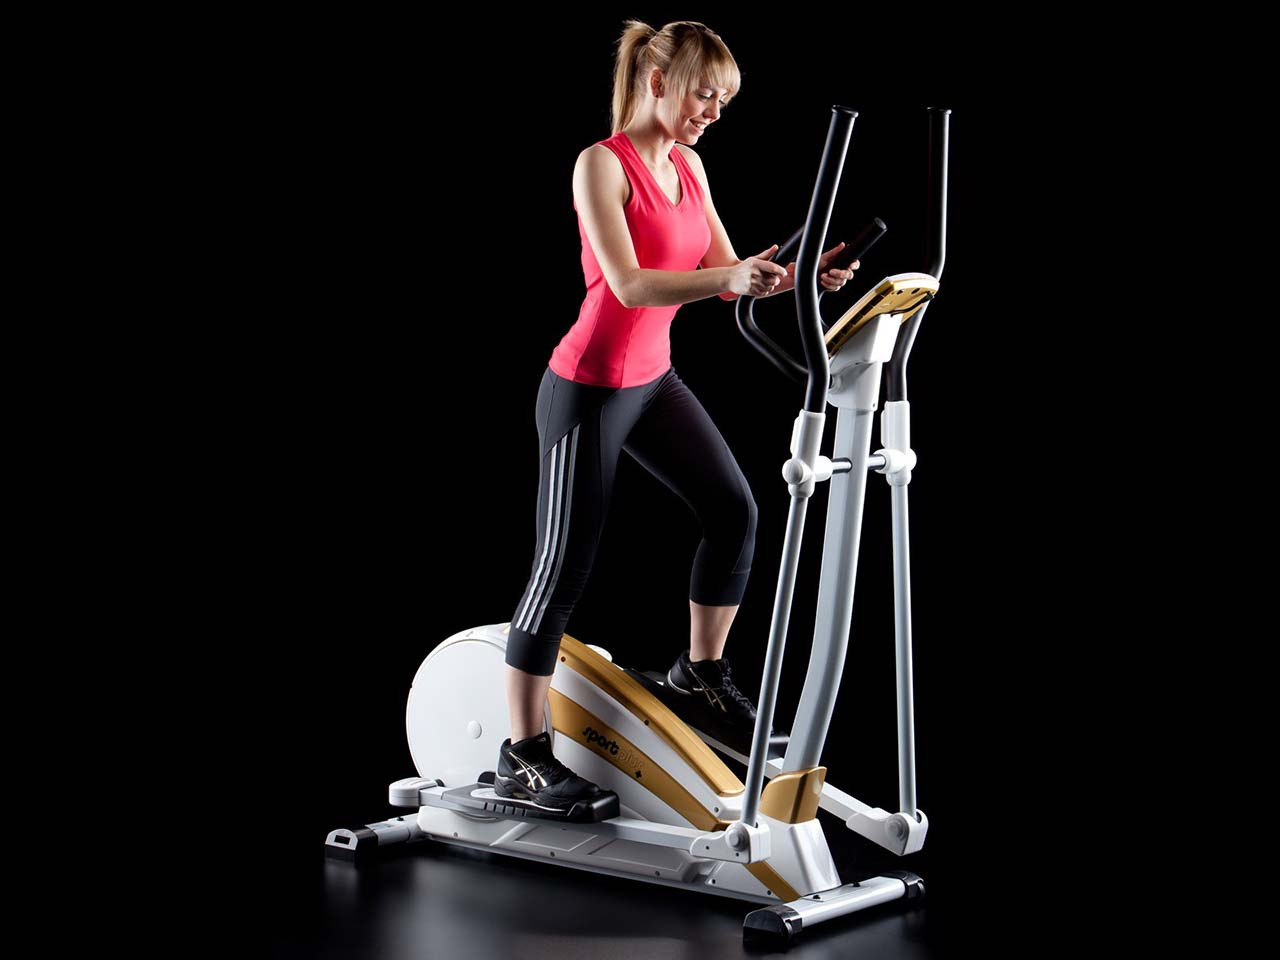 Classes on an elliptical trainer with a tilt of the body forward